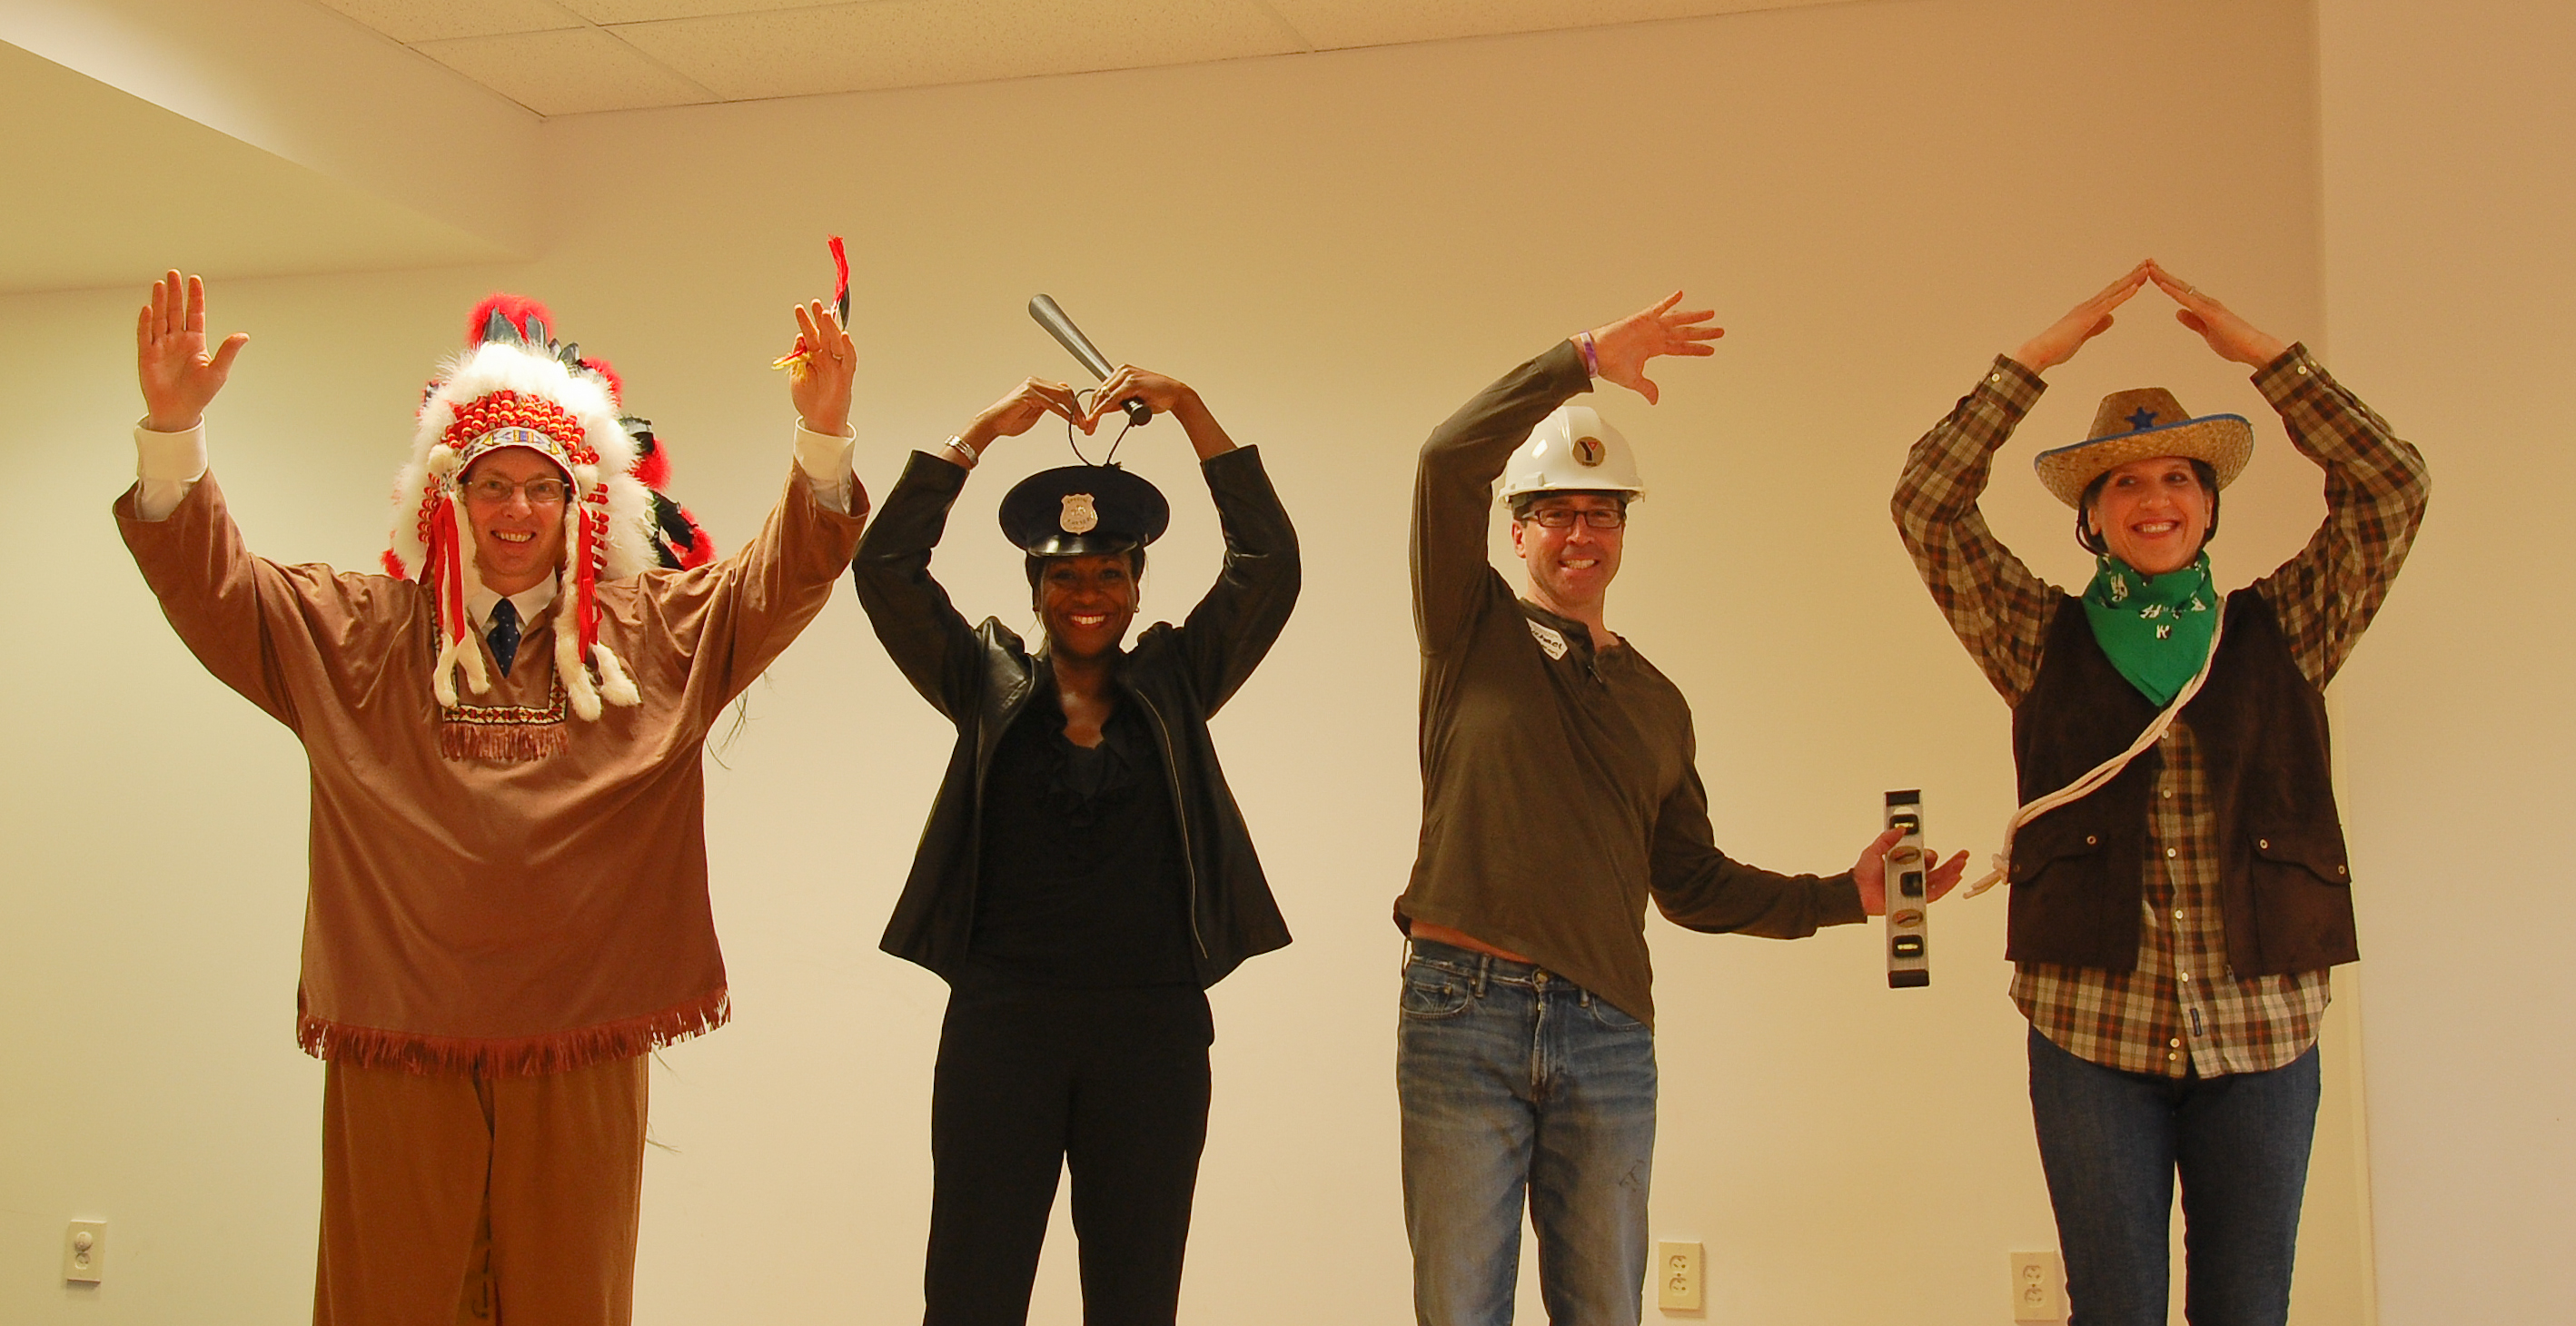 Way to you join today for the triangleVillage People Ymca Dance